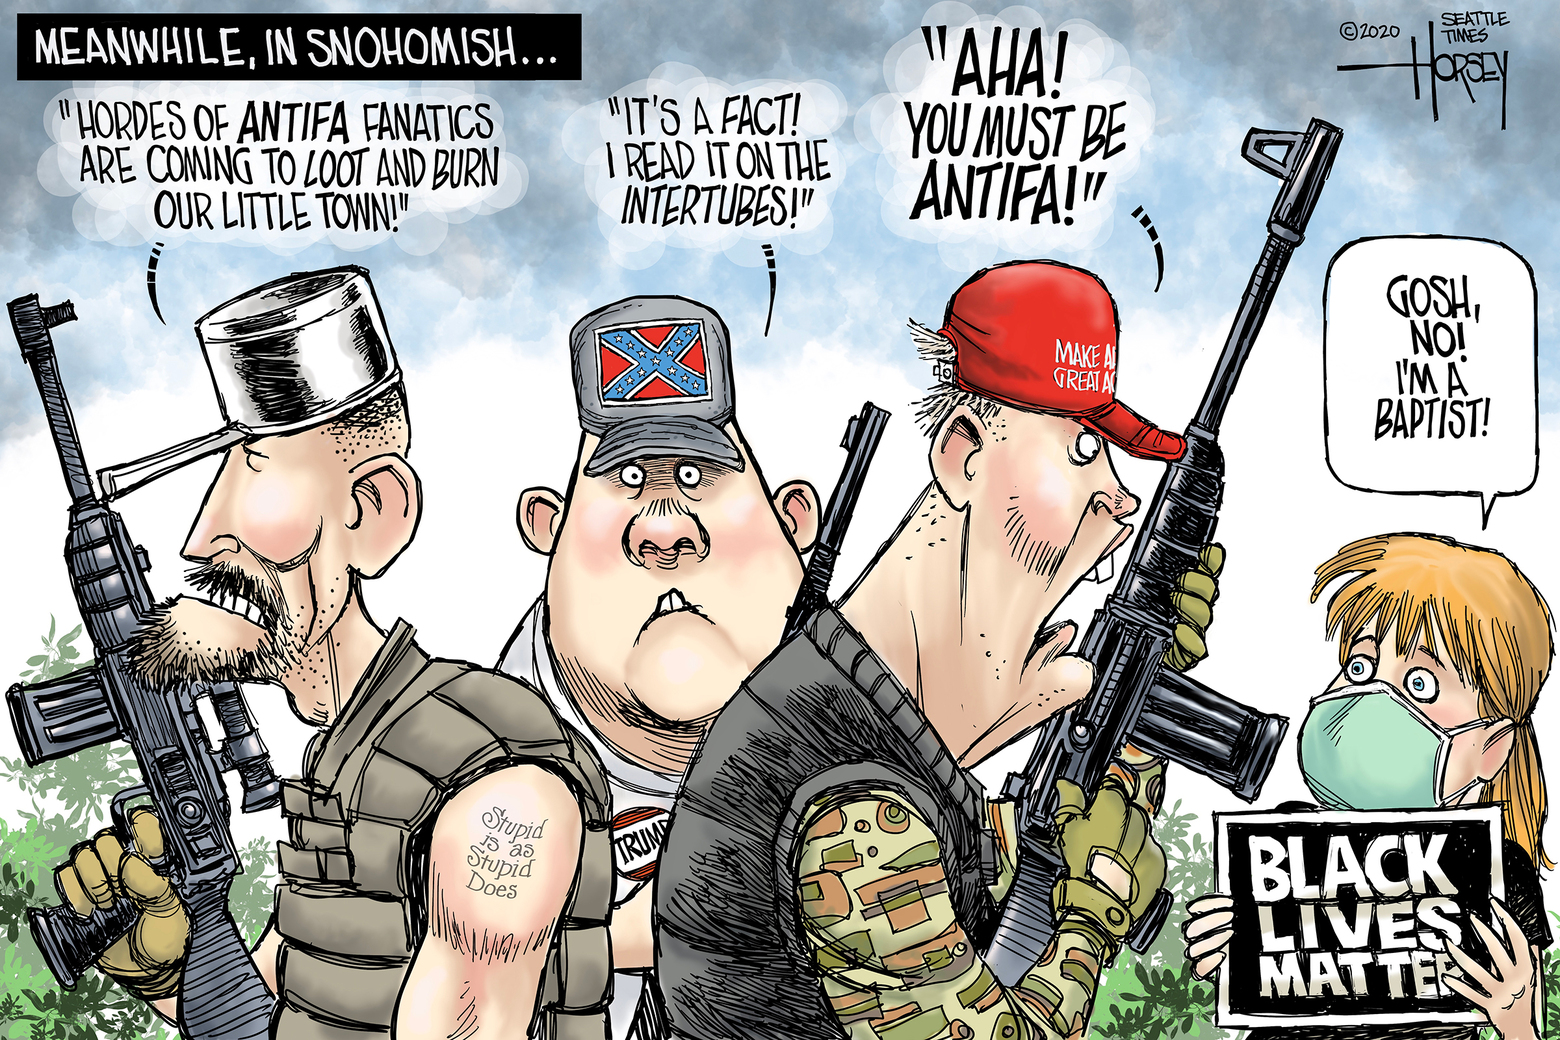 Oregon Officials Warn False Antifa Rumors Waste Precious Resources Needed to Fight Fires